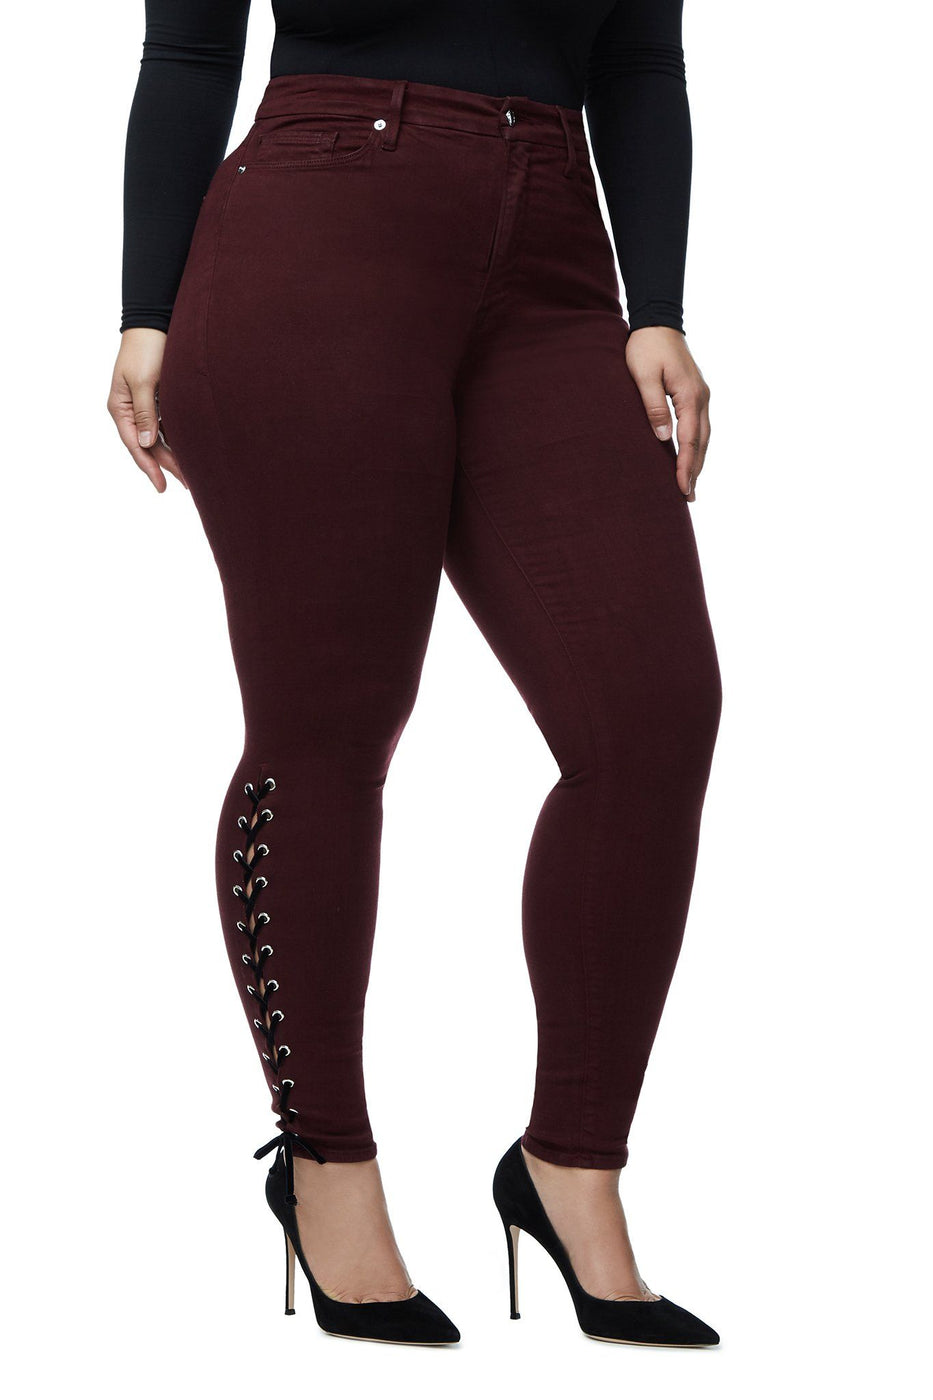 Good American High Waisted Lace Up Burgundy001 Jeans